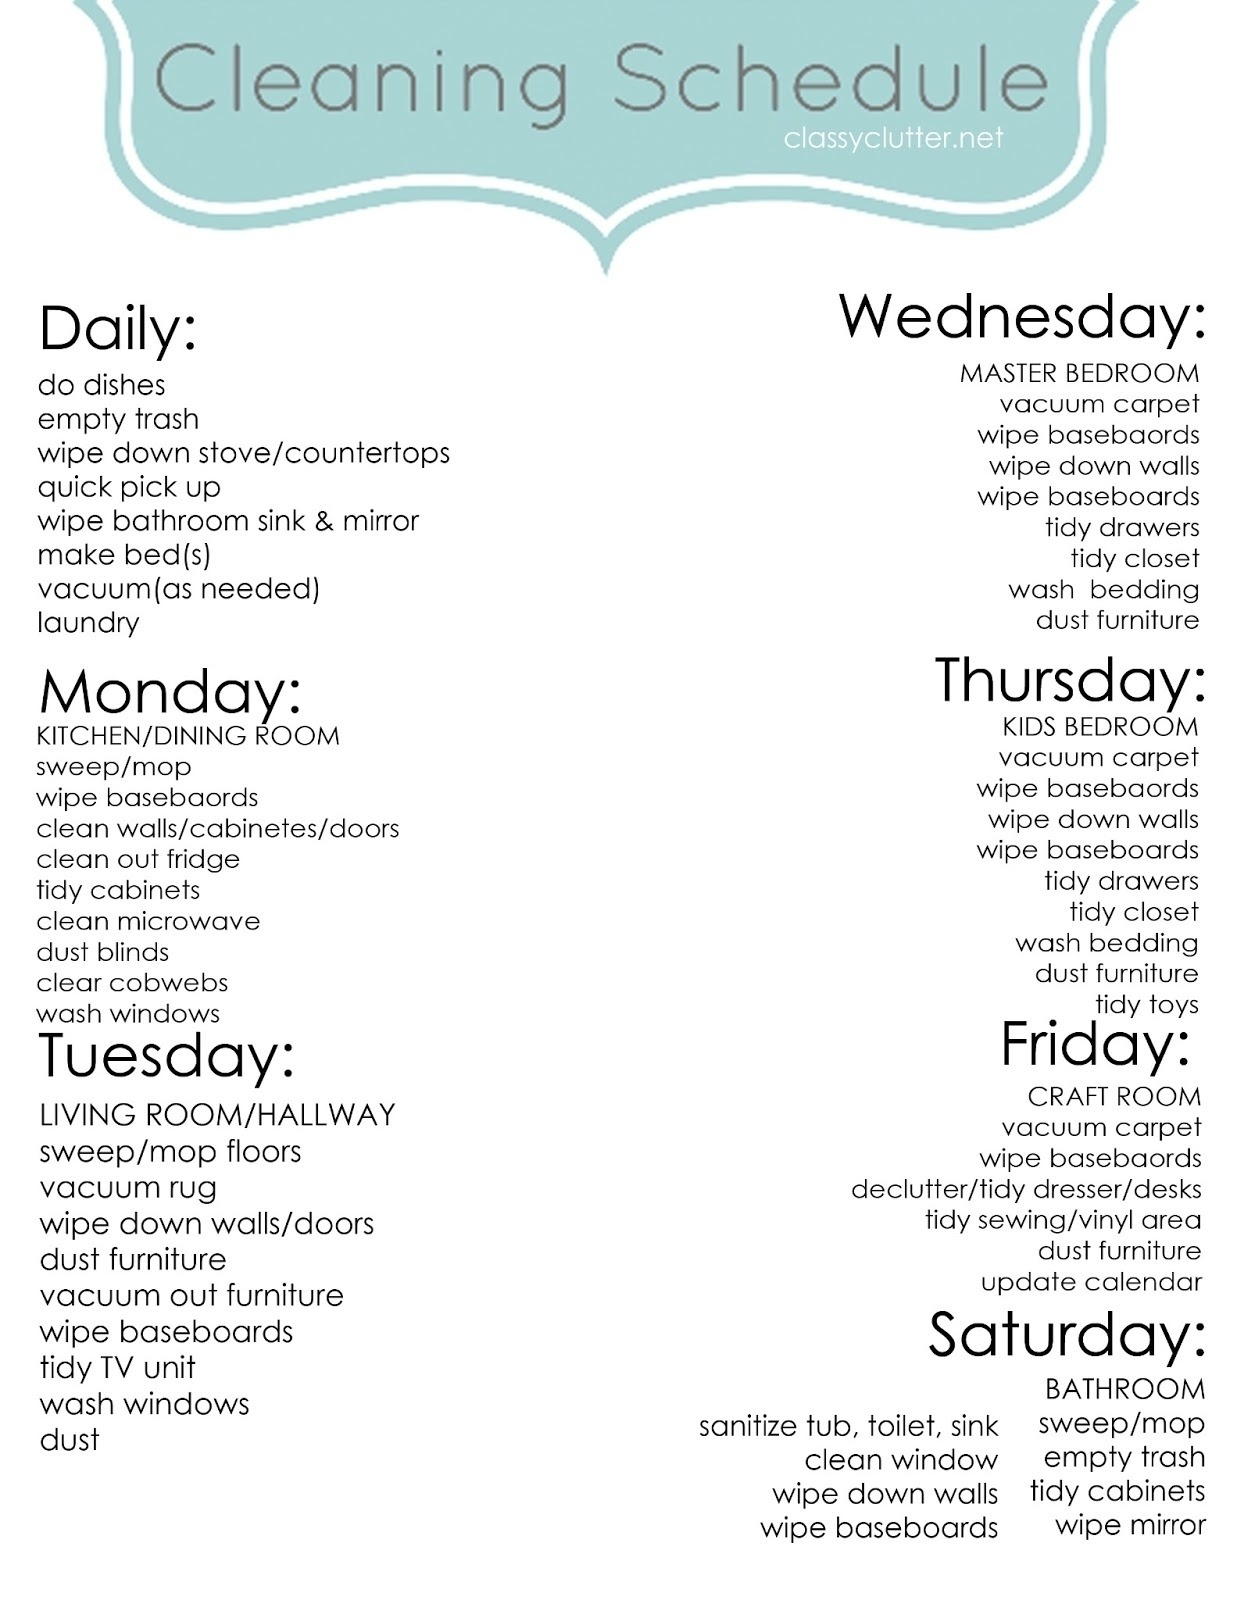 Monday To Friday House Cleaning Schedule | Template Calendar Printable inside Monday Through Friday Cleaning Schedule